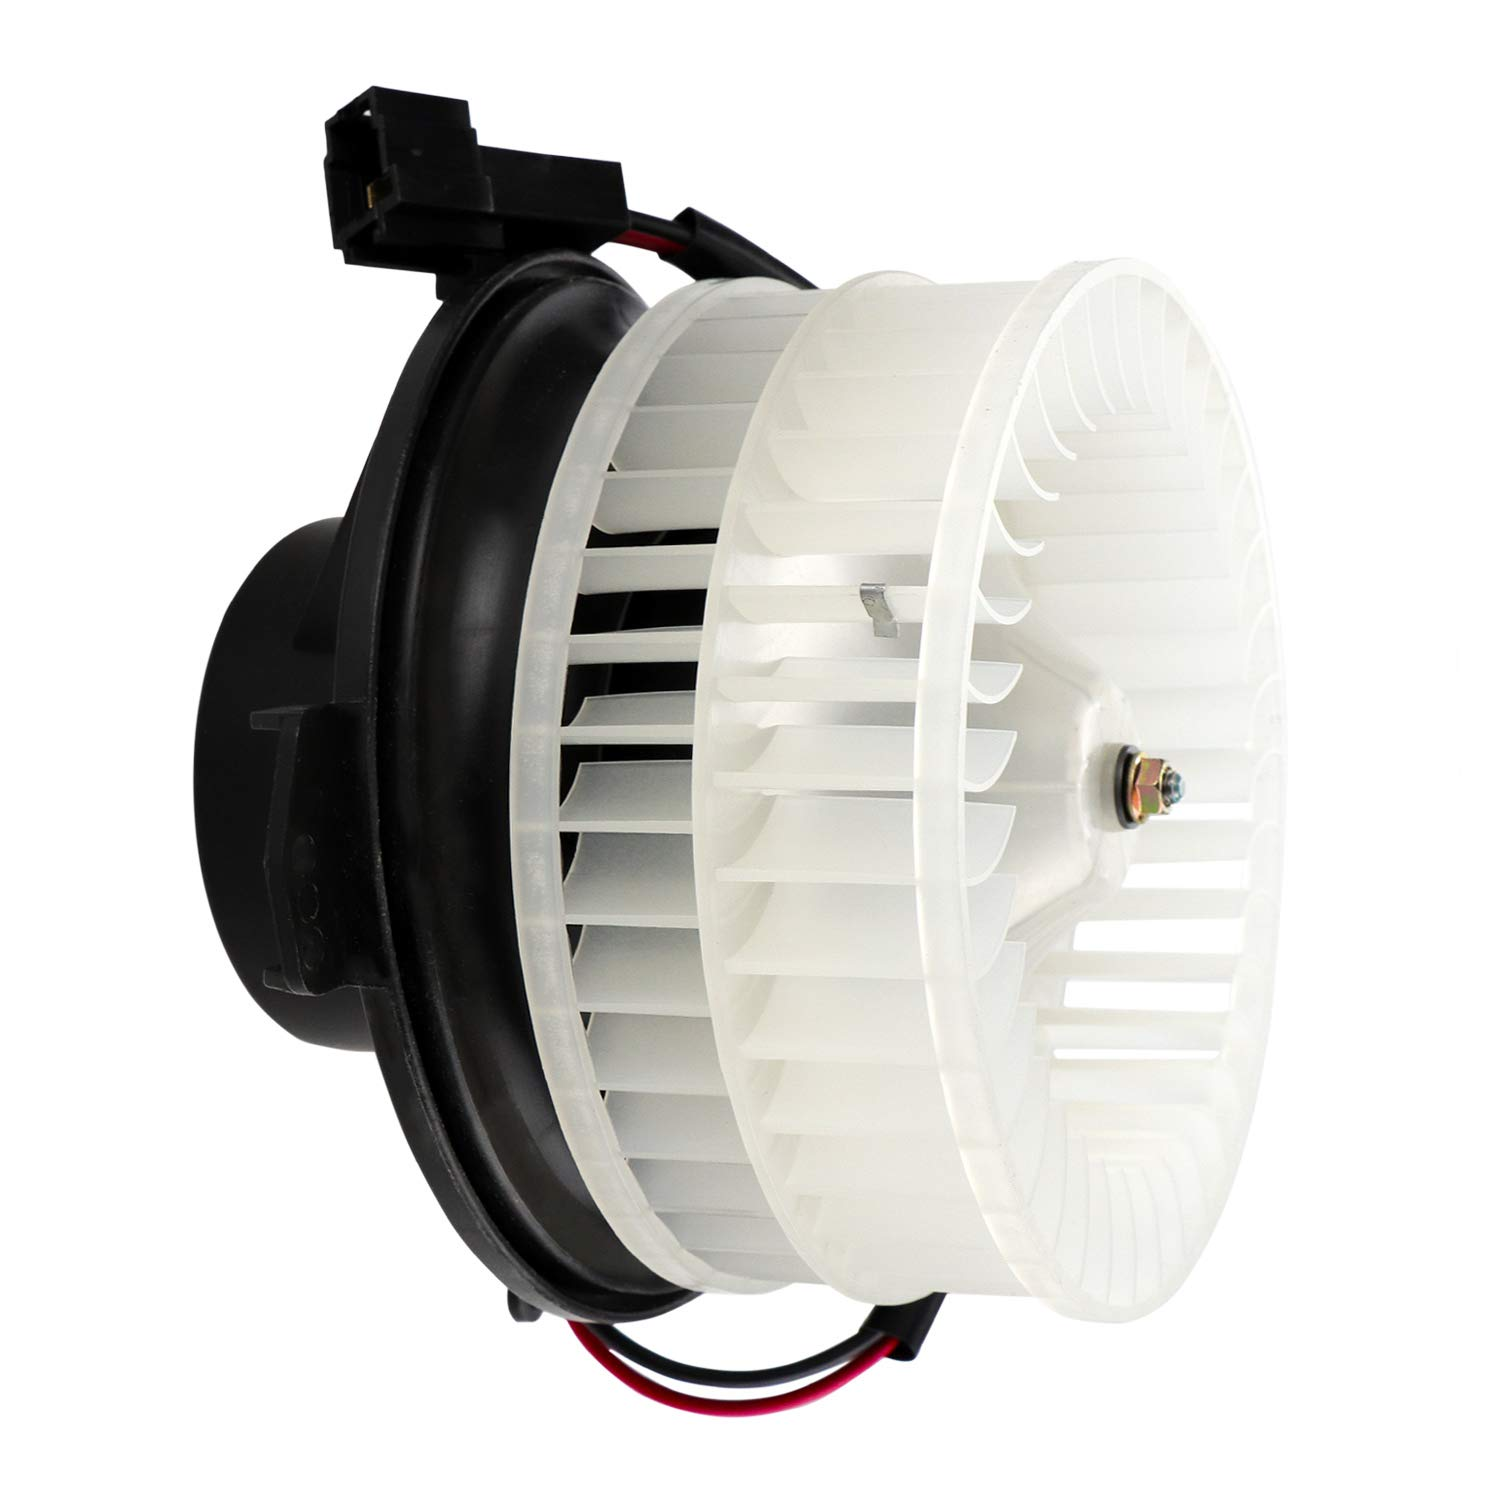 Heater Blower Motor w//Fan Cage Blower HVAC Blower Motor Assembly fit for 1996-2000 Chrysler Town /& Country Dodge Caravan /& Grand Caravan Plymouth Voyager /& Grand Voyager